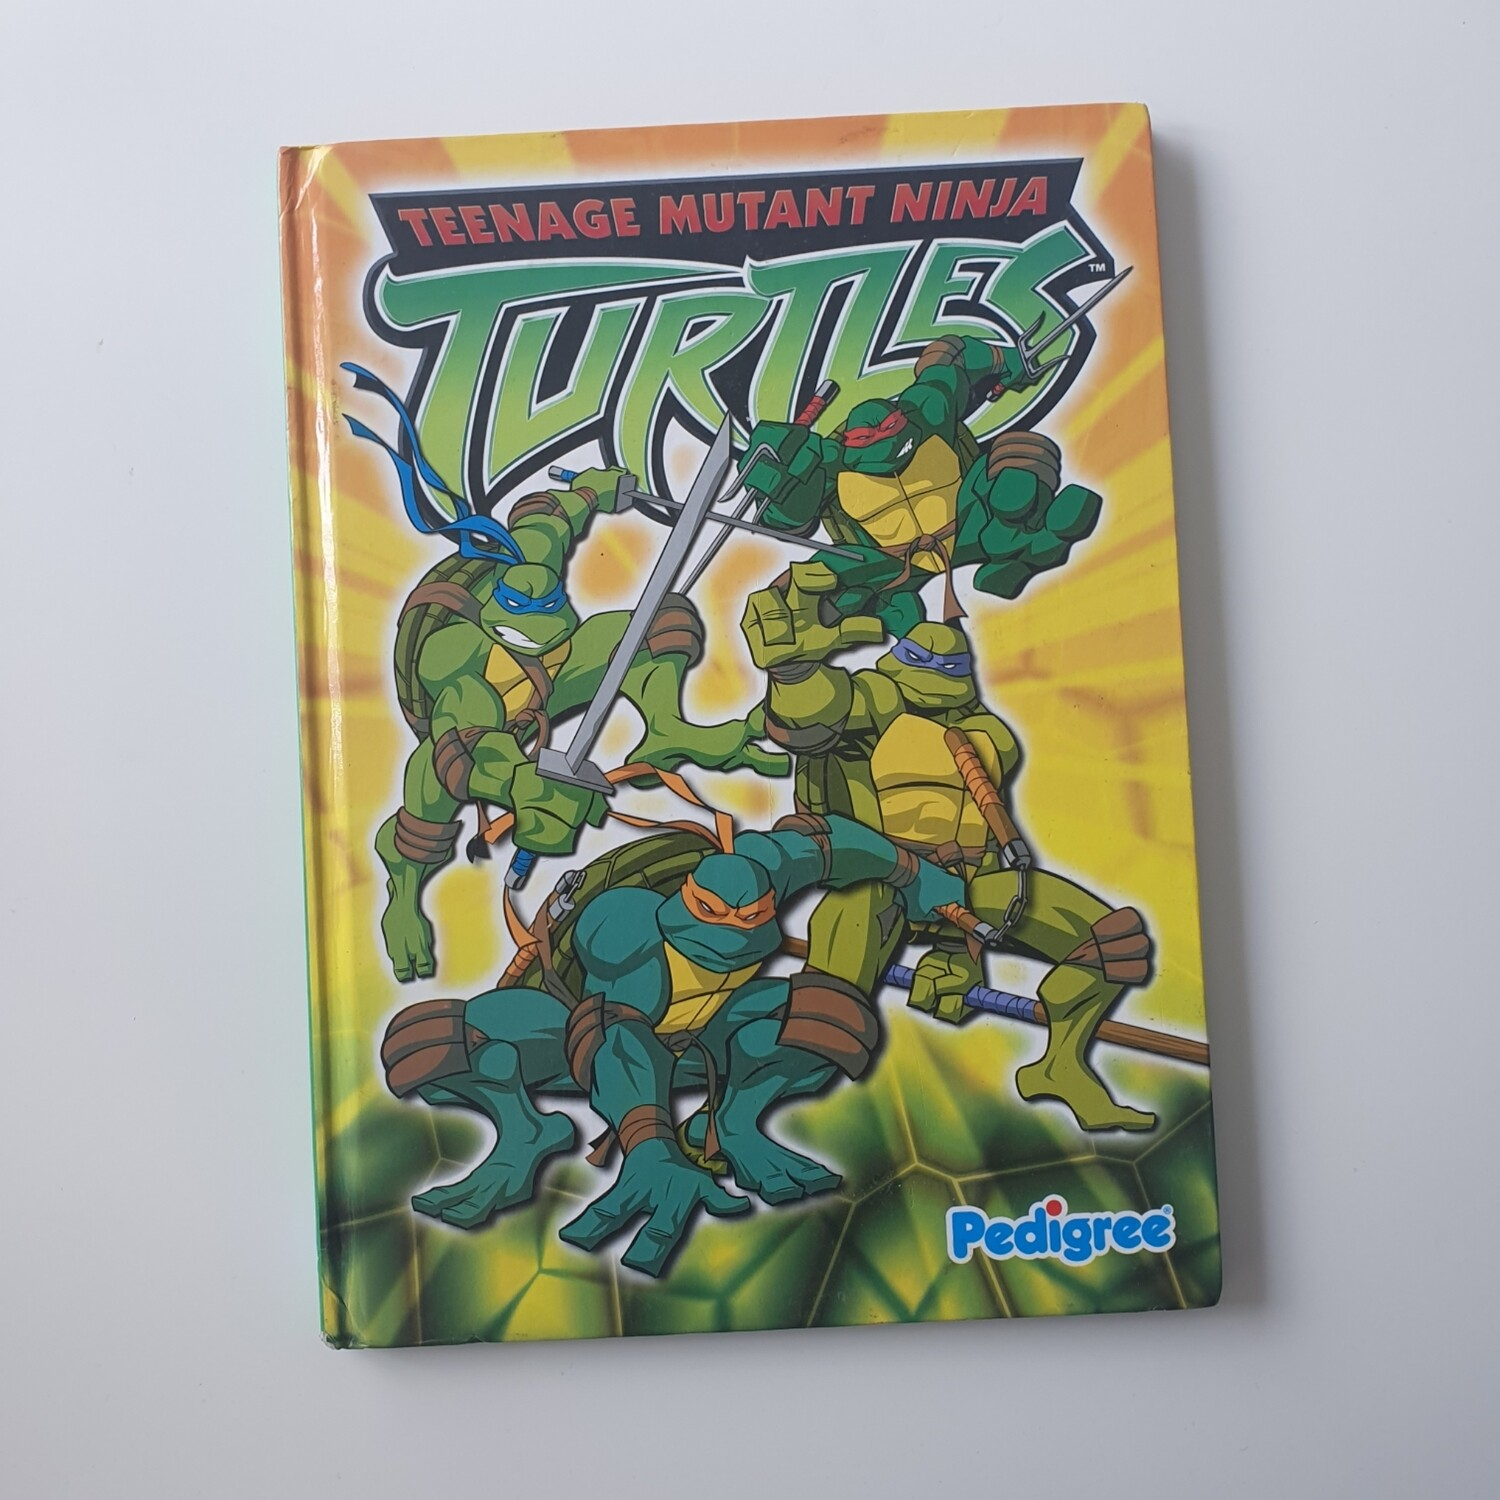 Teenage Mutant Ninja Turtles Notebooks - A4 size - choose from a selection